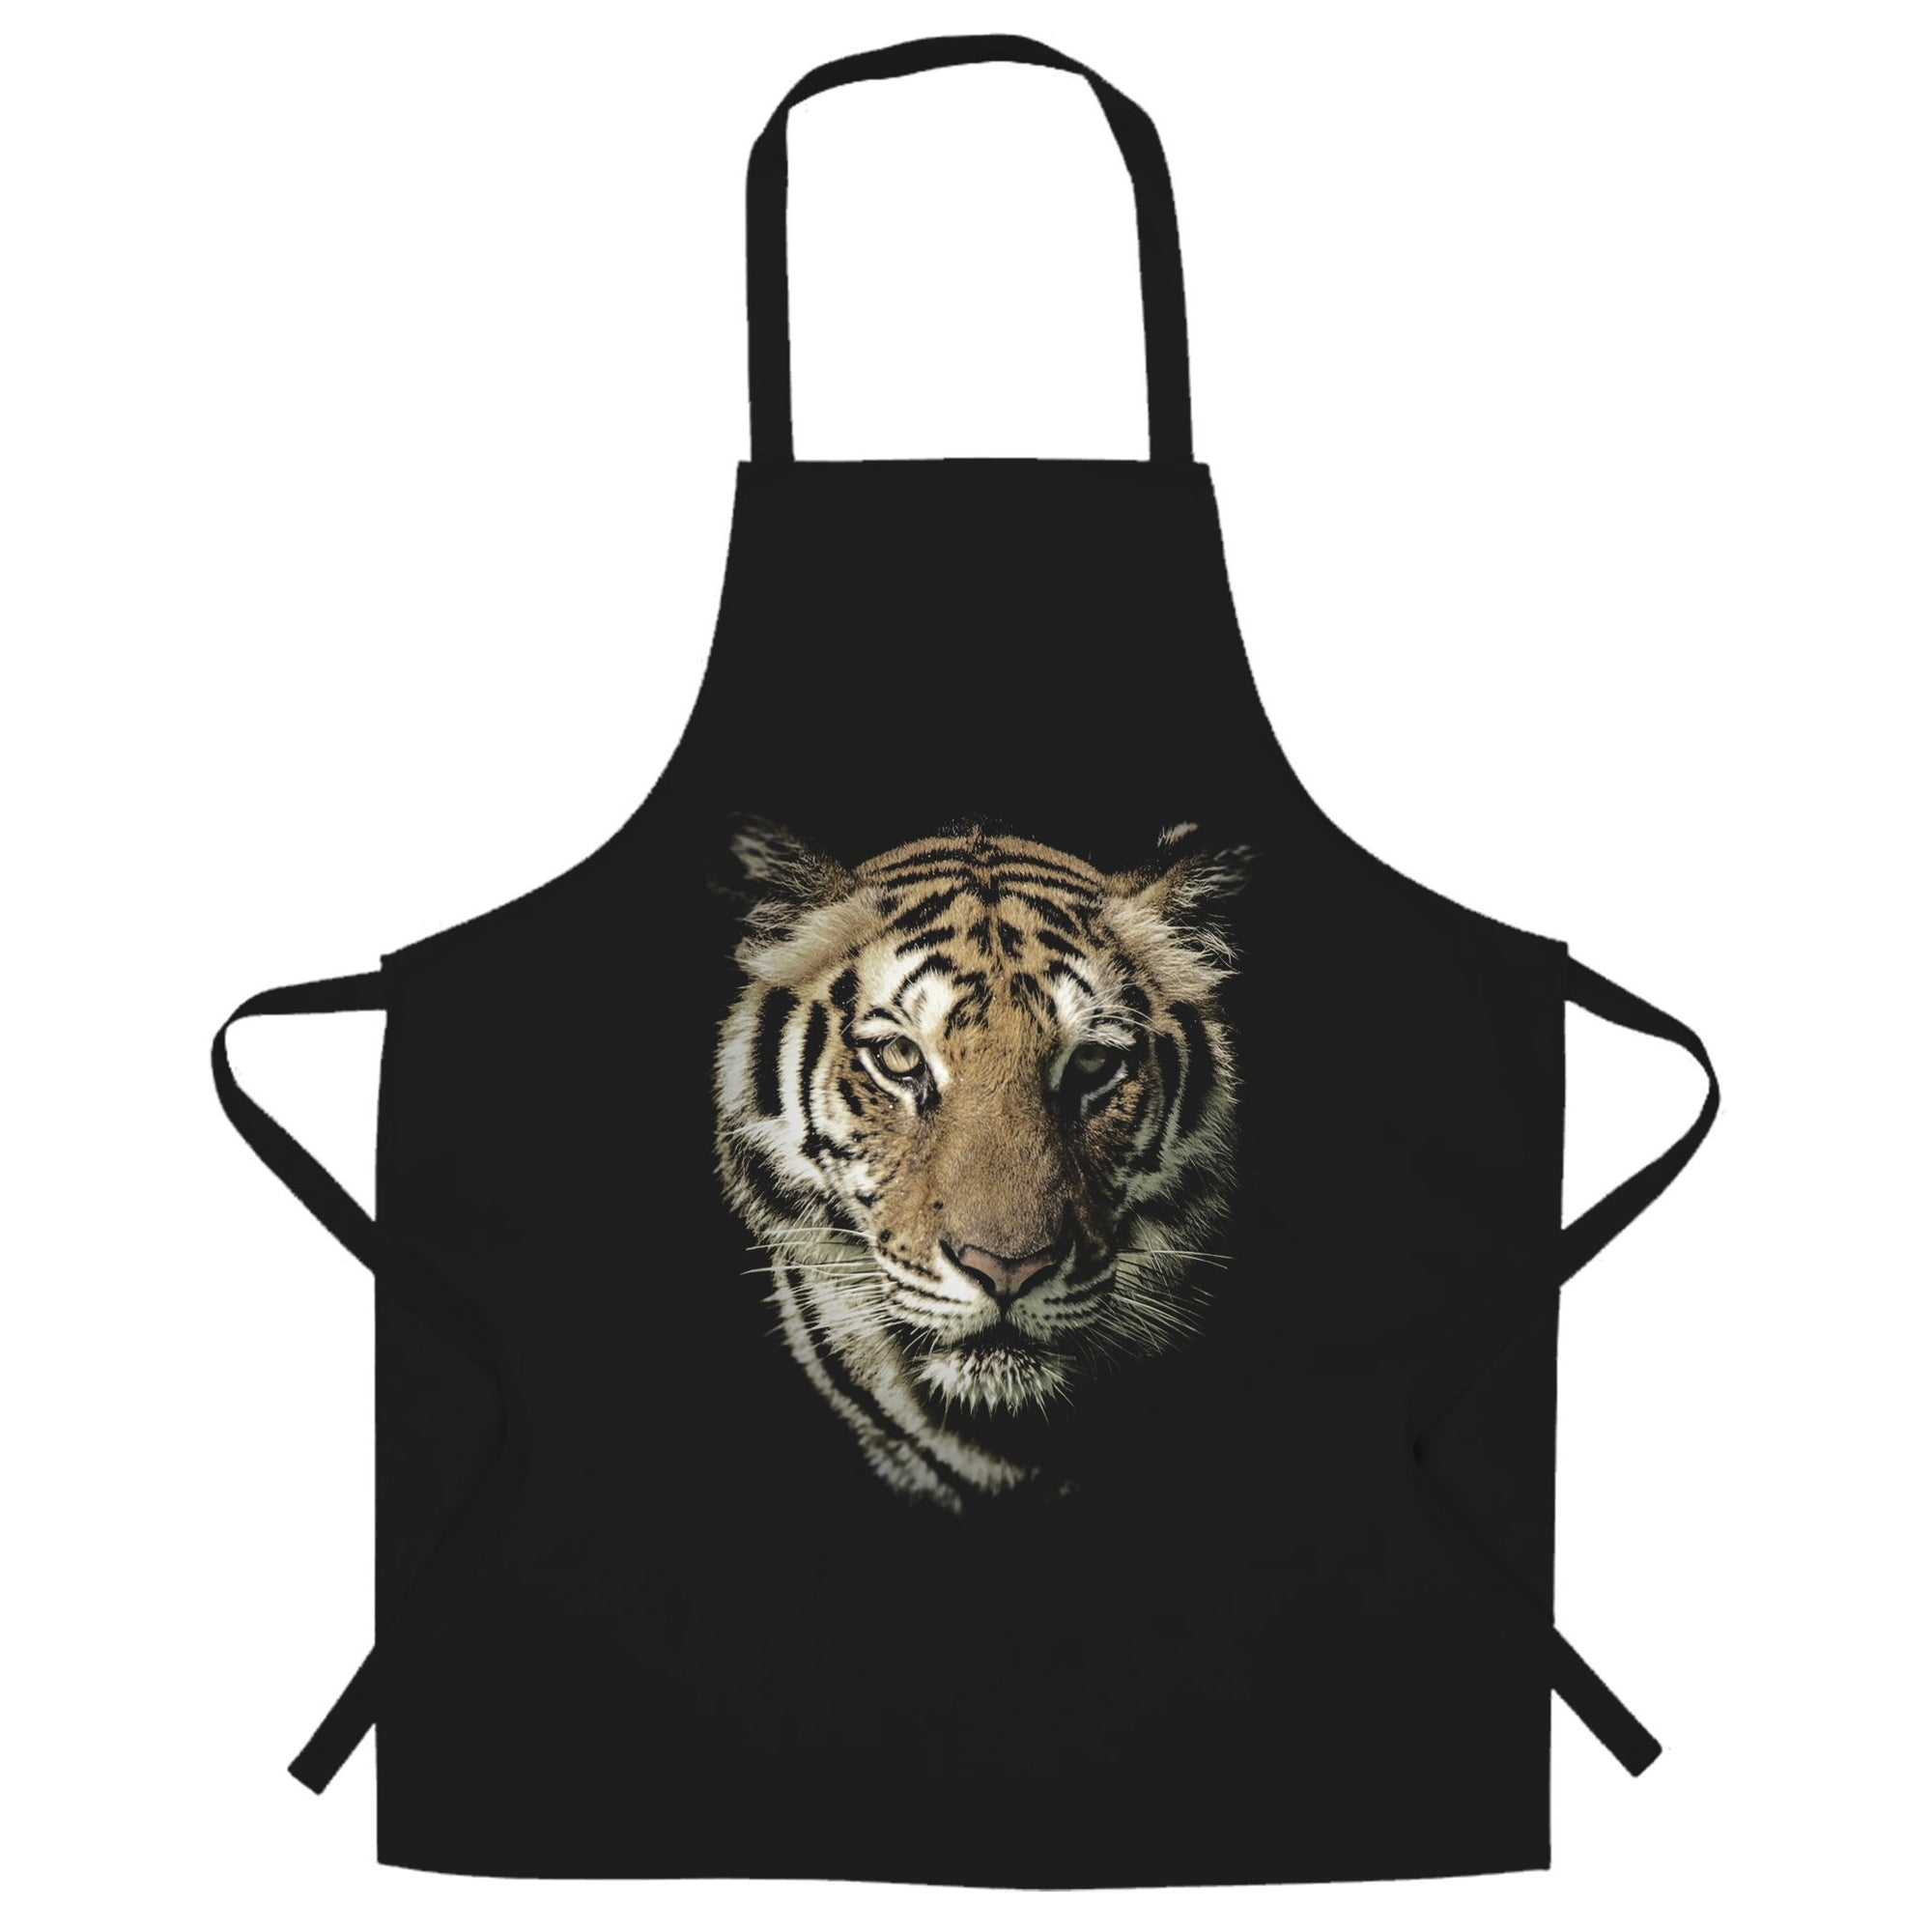 Tiger Face Chef's Apron Majestic Big Cat Head